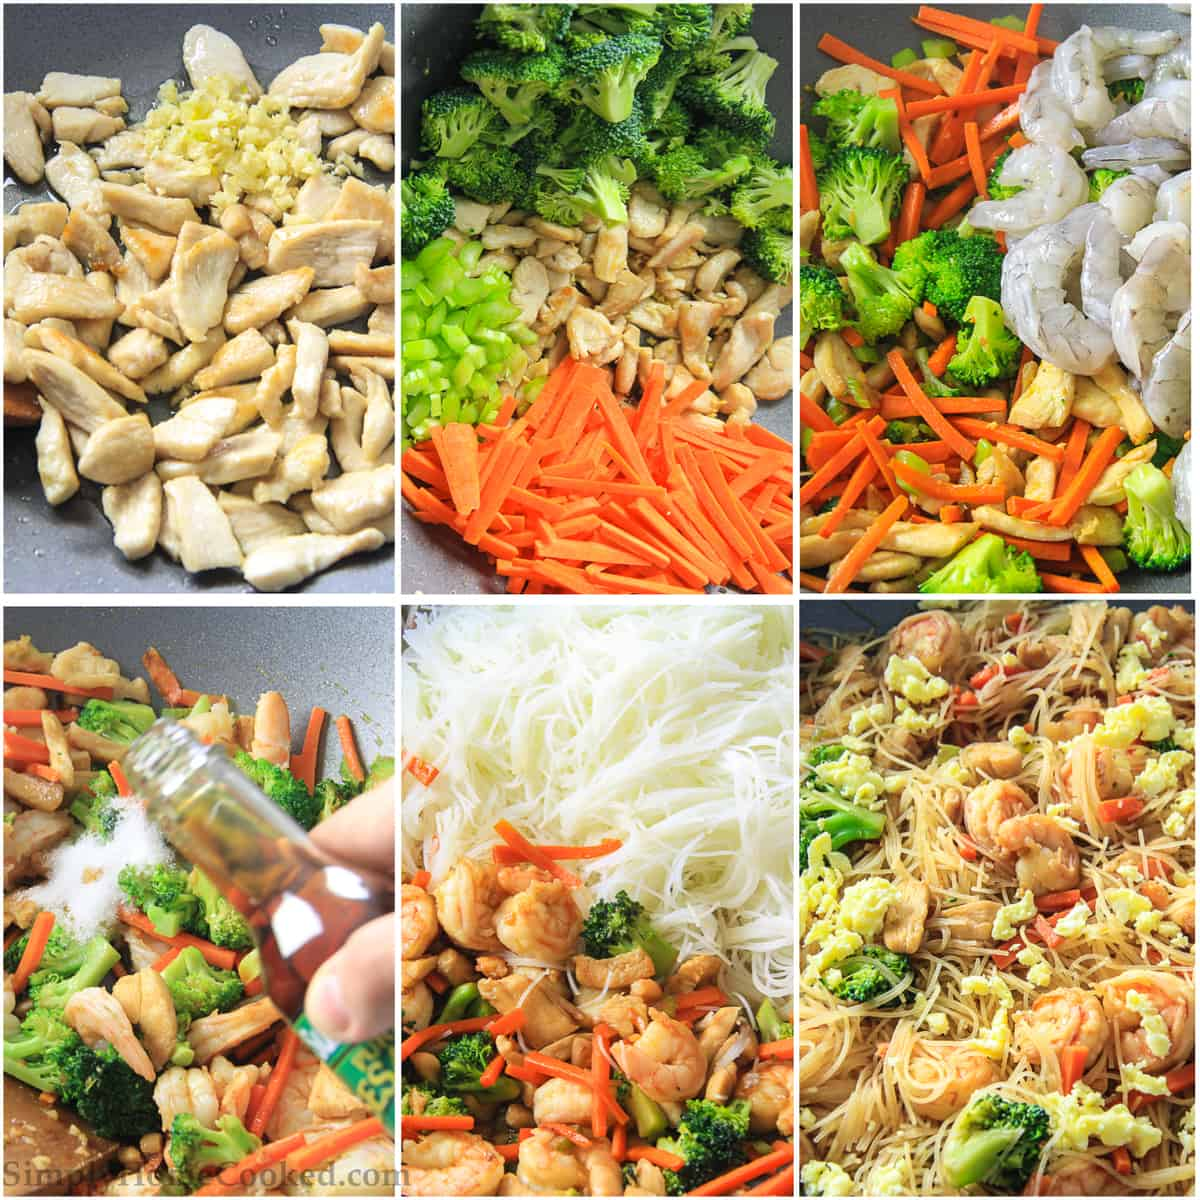 Gluten-Free Stir Fry - With Rice Noodles - Simply Home Cooked